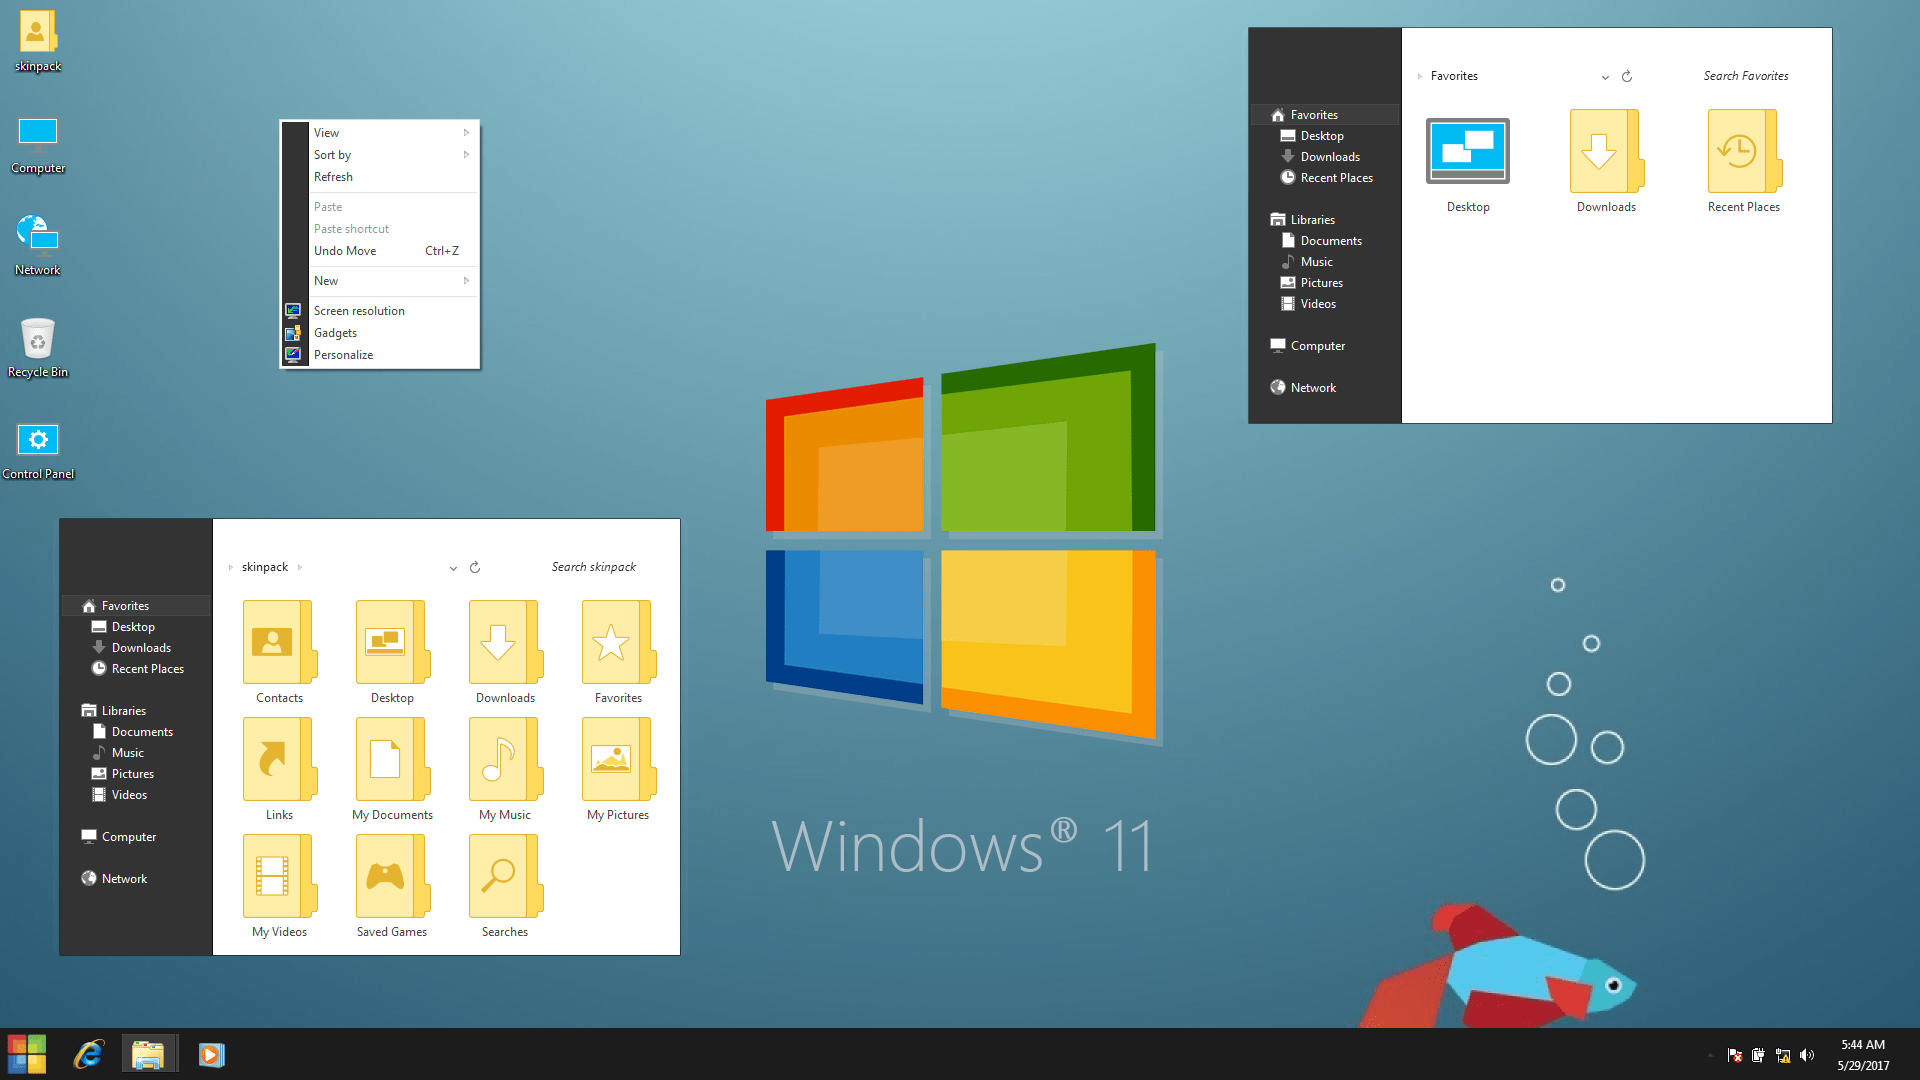 Windows 11 ISO Download 32 bit and 64 bit - Nayeen Al Amin